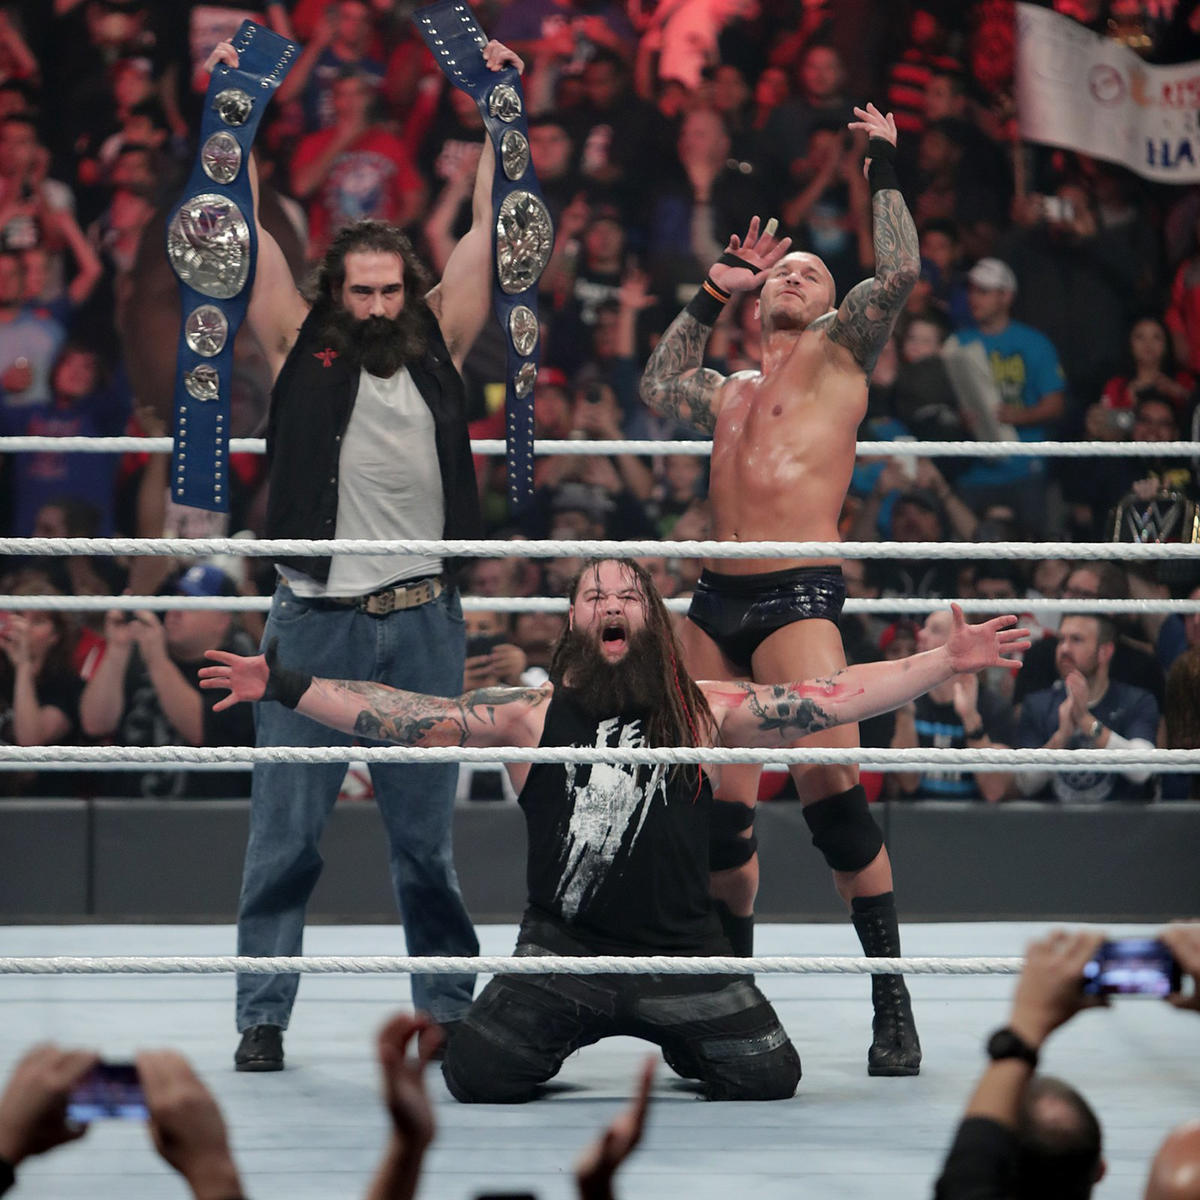 The era of Wyatt & Orton as SmackDown Tag Team Champions officially kicks off.